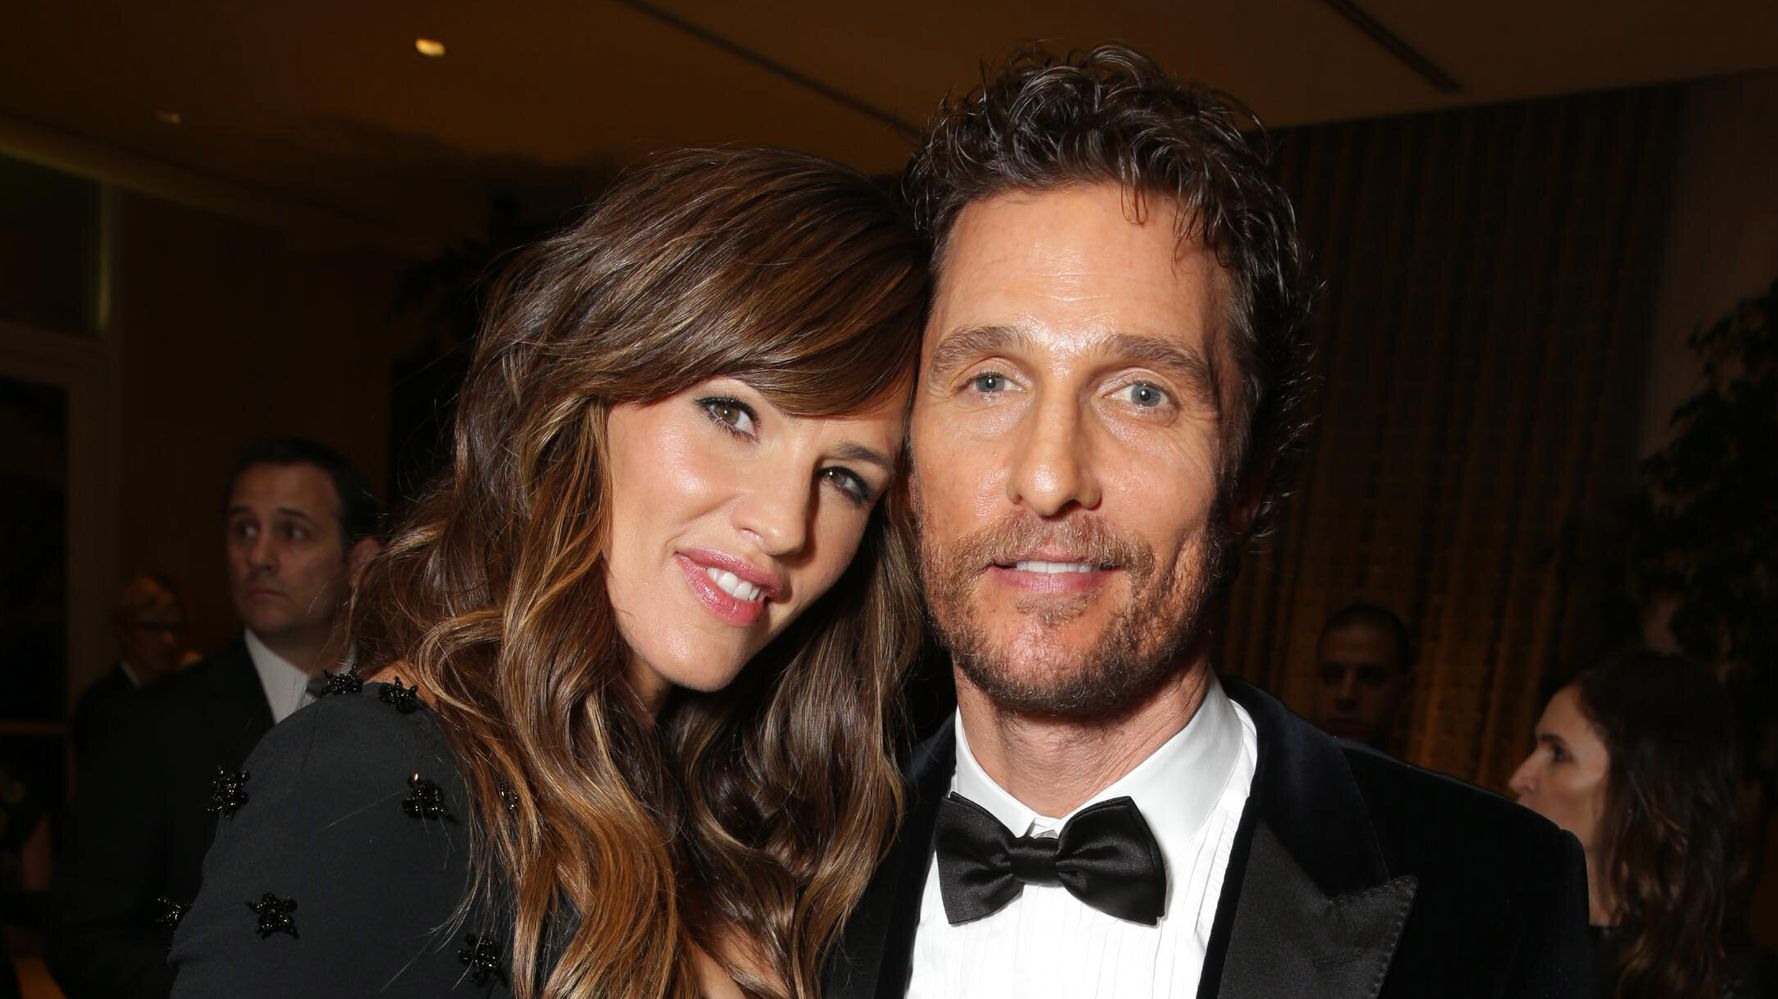 Jennifer Garner On How 'Sweet' Matthew McConaughey Kept Her From Quitting Acting